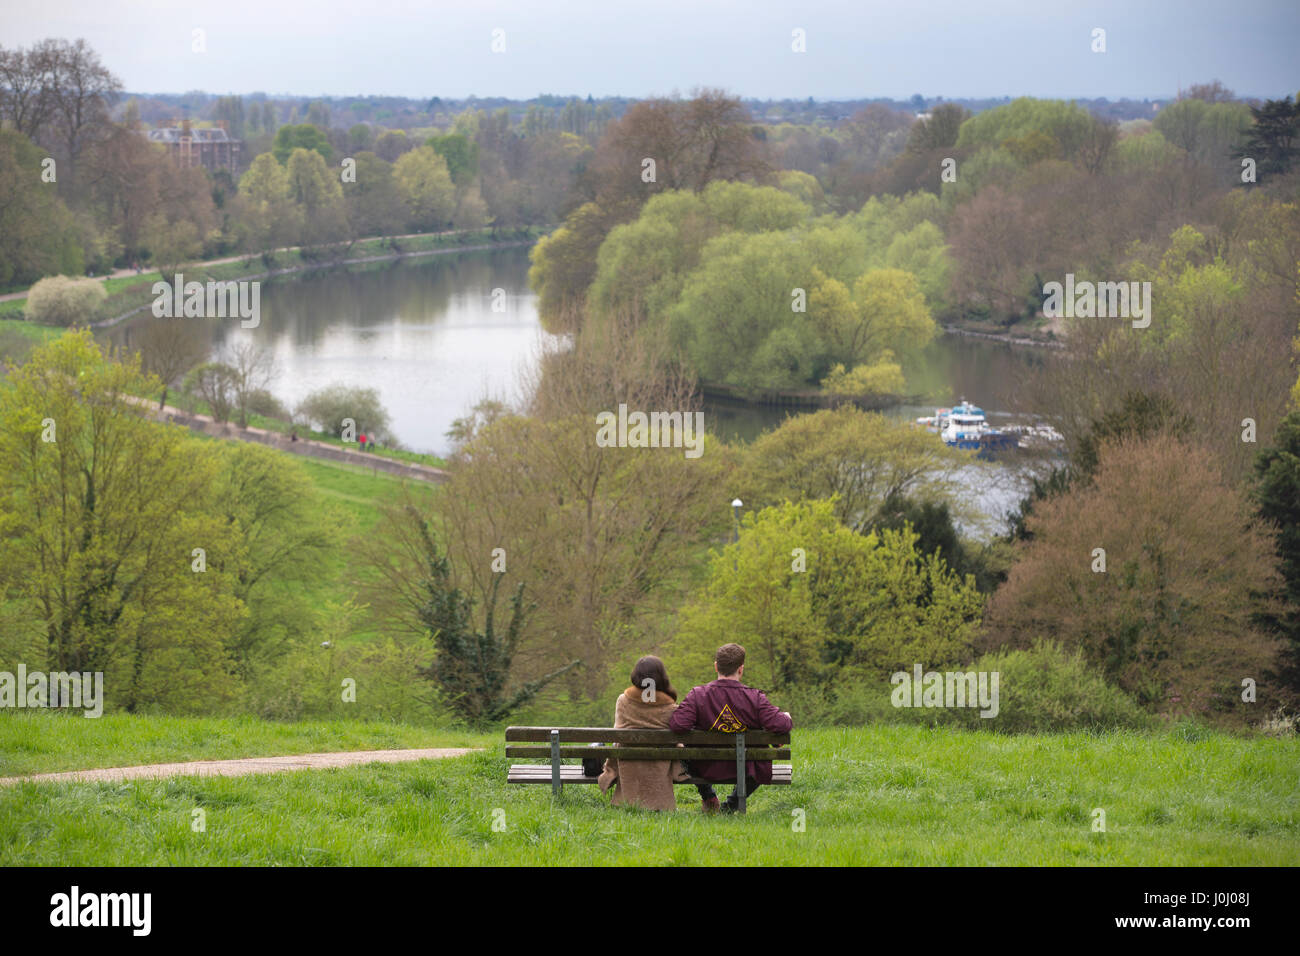 Landscapes along the south bank - The Thames Path Teddington Weir And Lock To Richmond Along The South Side Of The